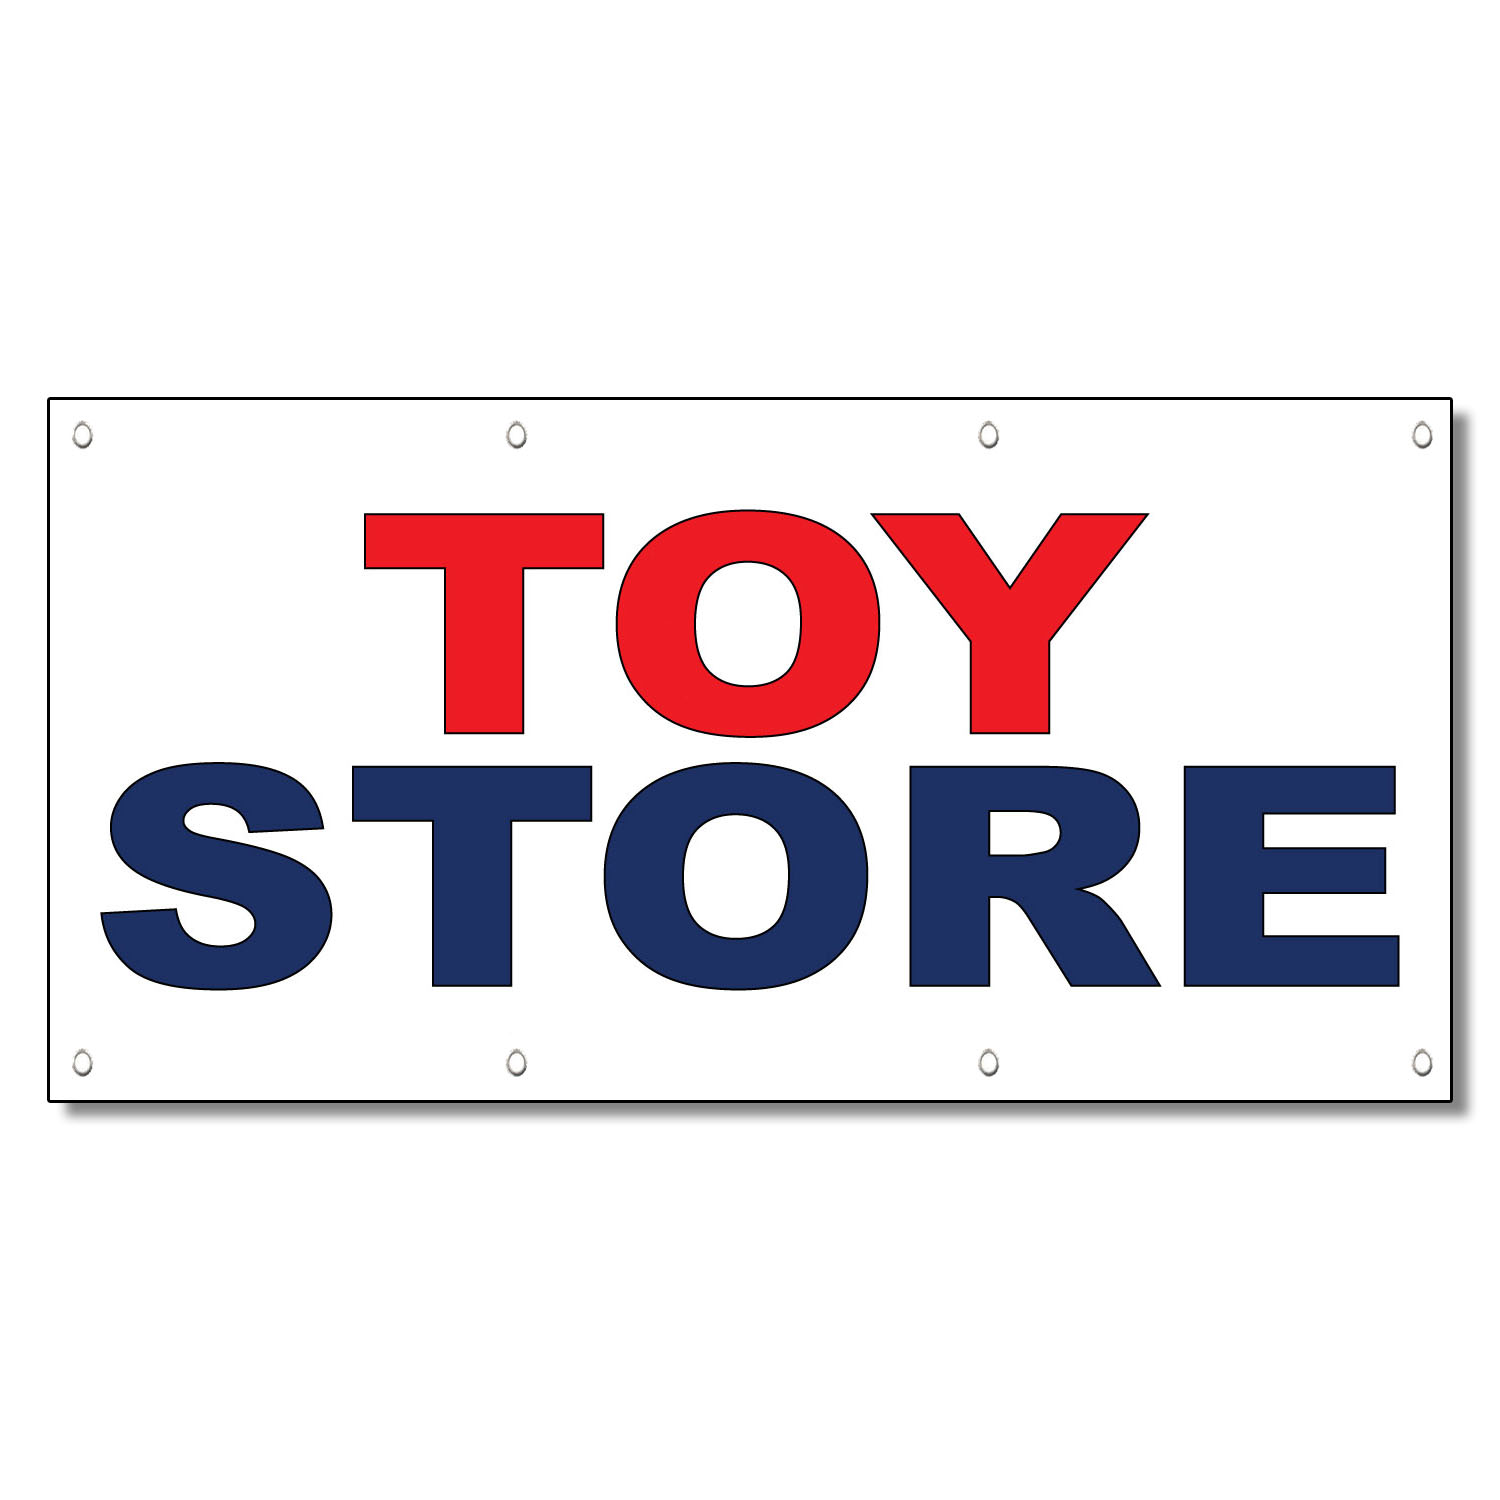 Toy Store Red Blue 13 Oz Vinyl Banner Sign With Grommets